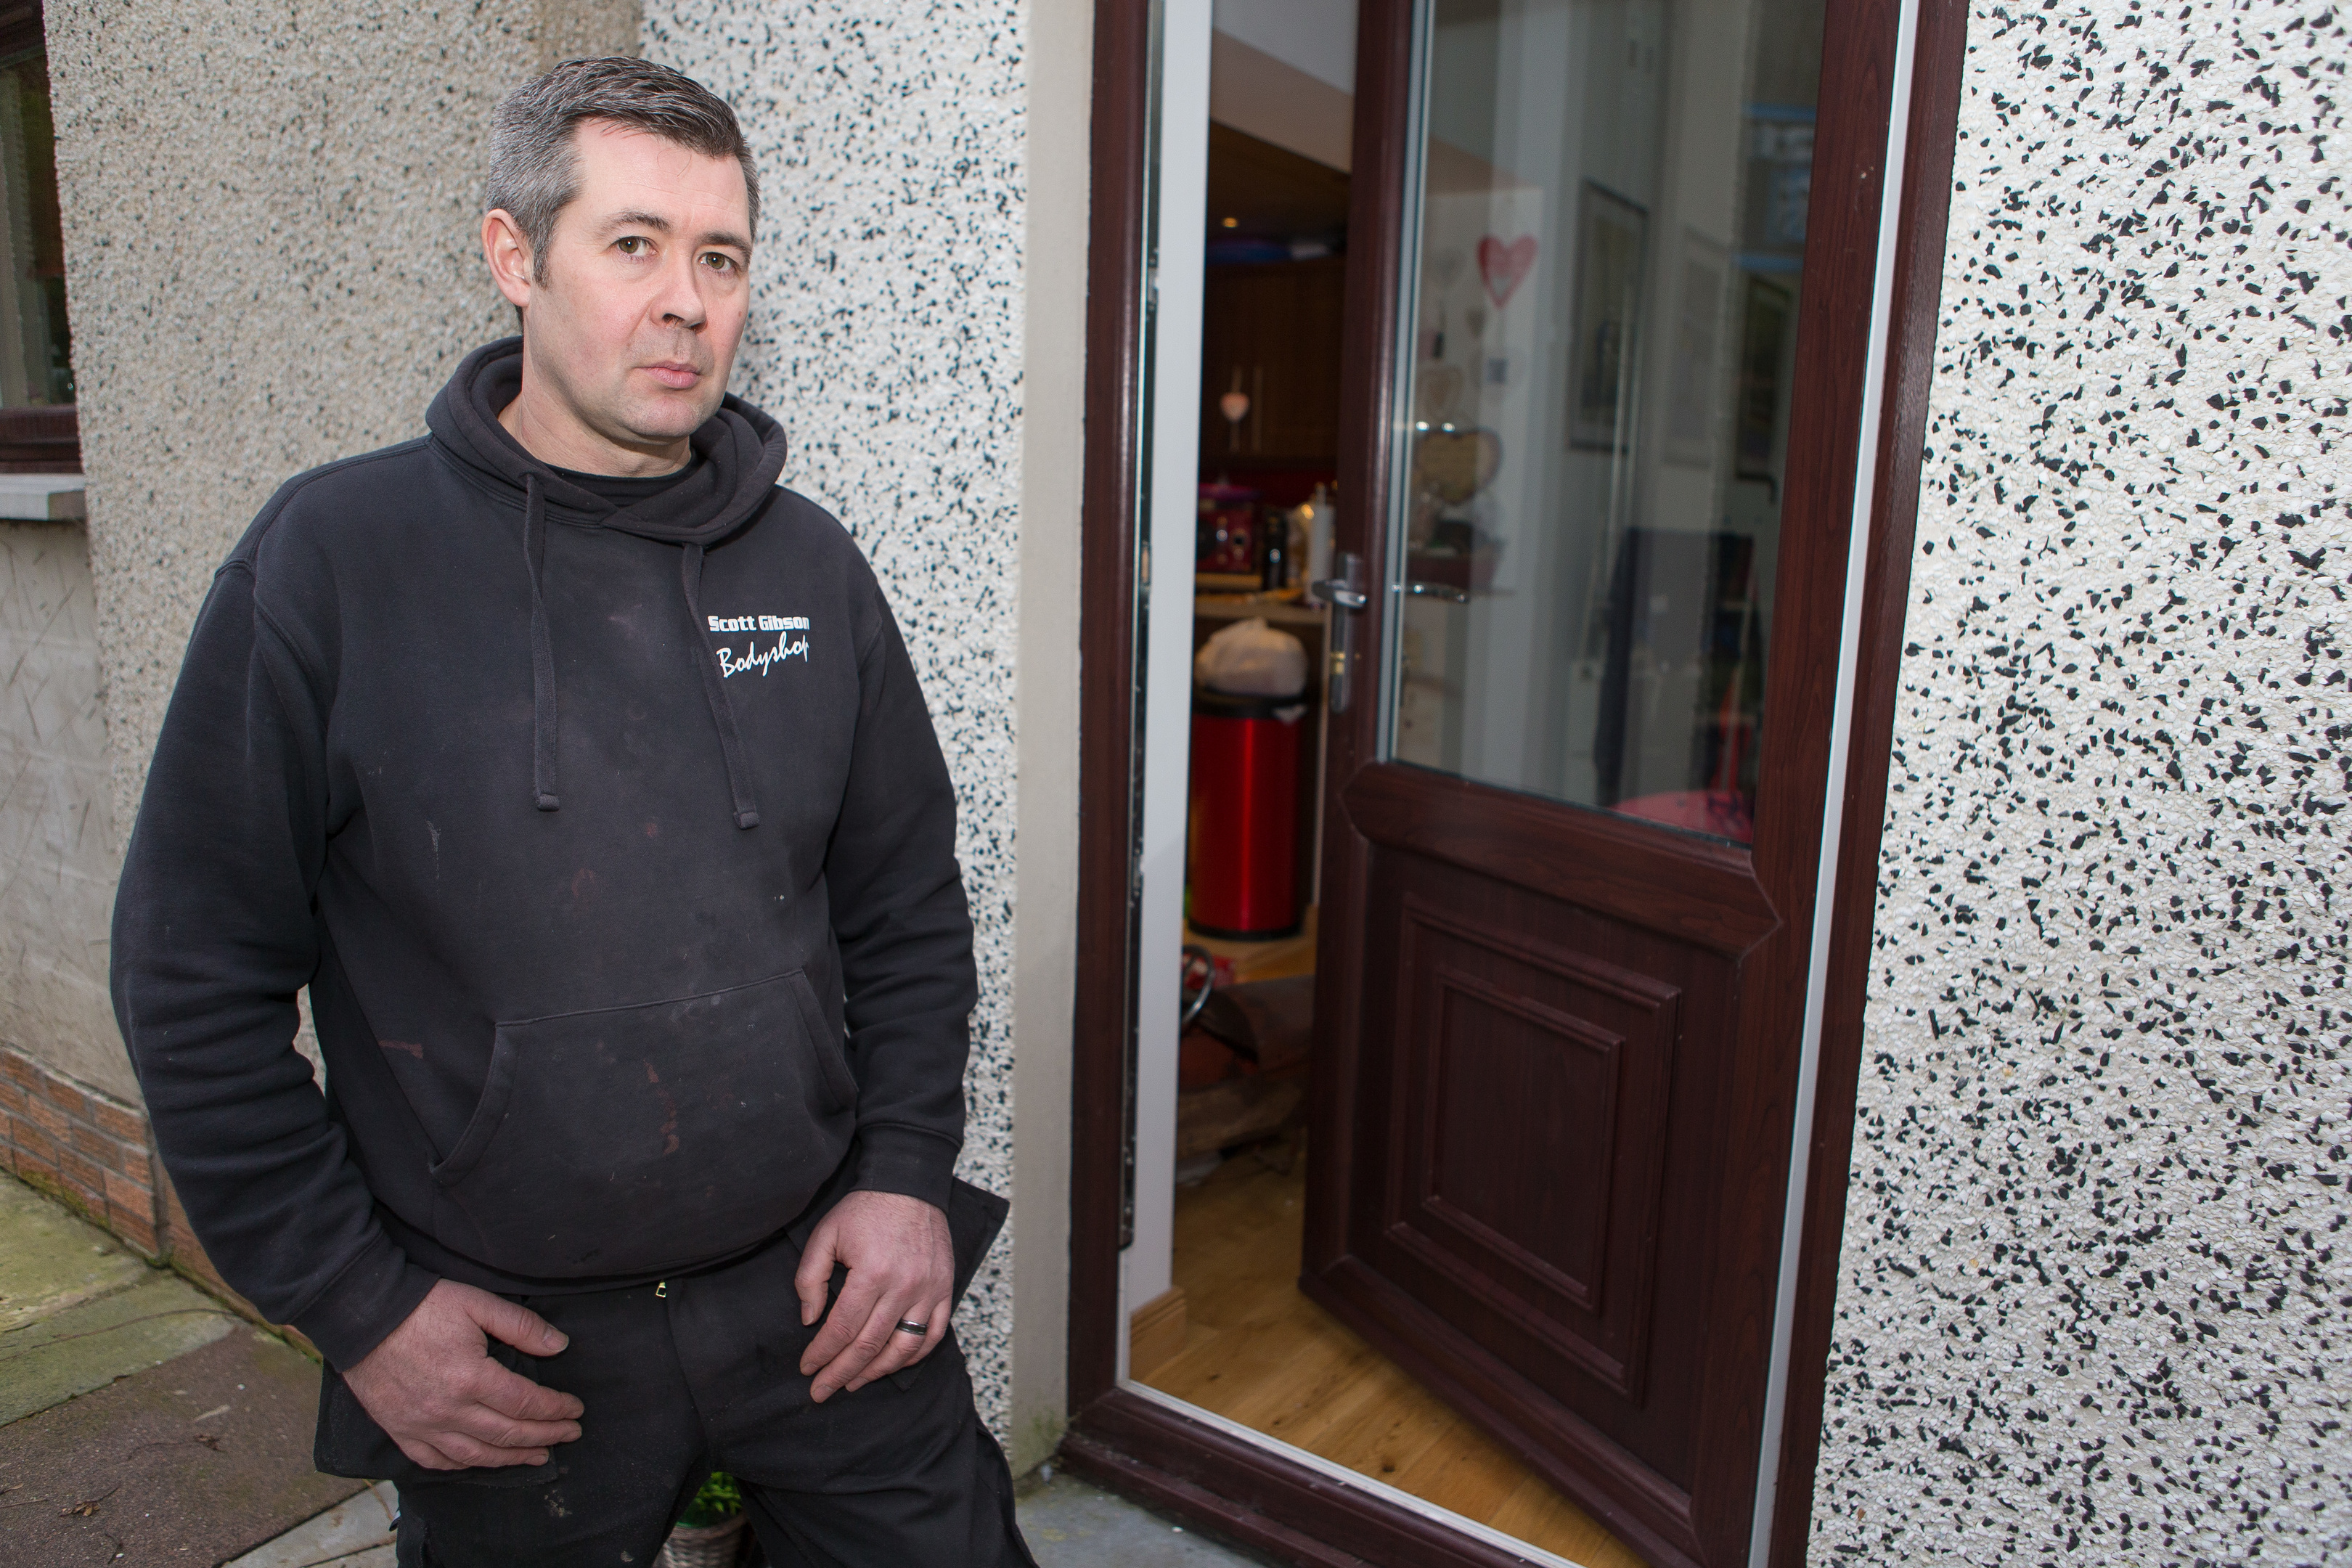 Home owner Scott Gibson, 44, at his property in Dunvegan Avenue, Kirkcaldy, which was broken into and many personal items were taken.